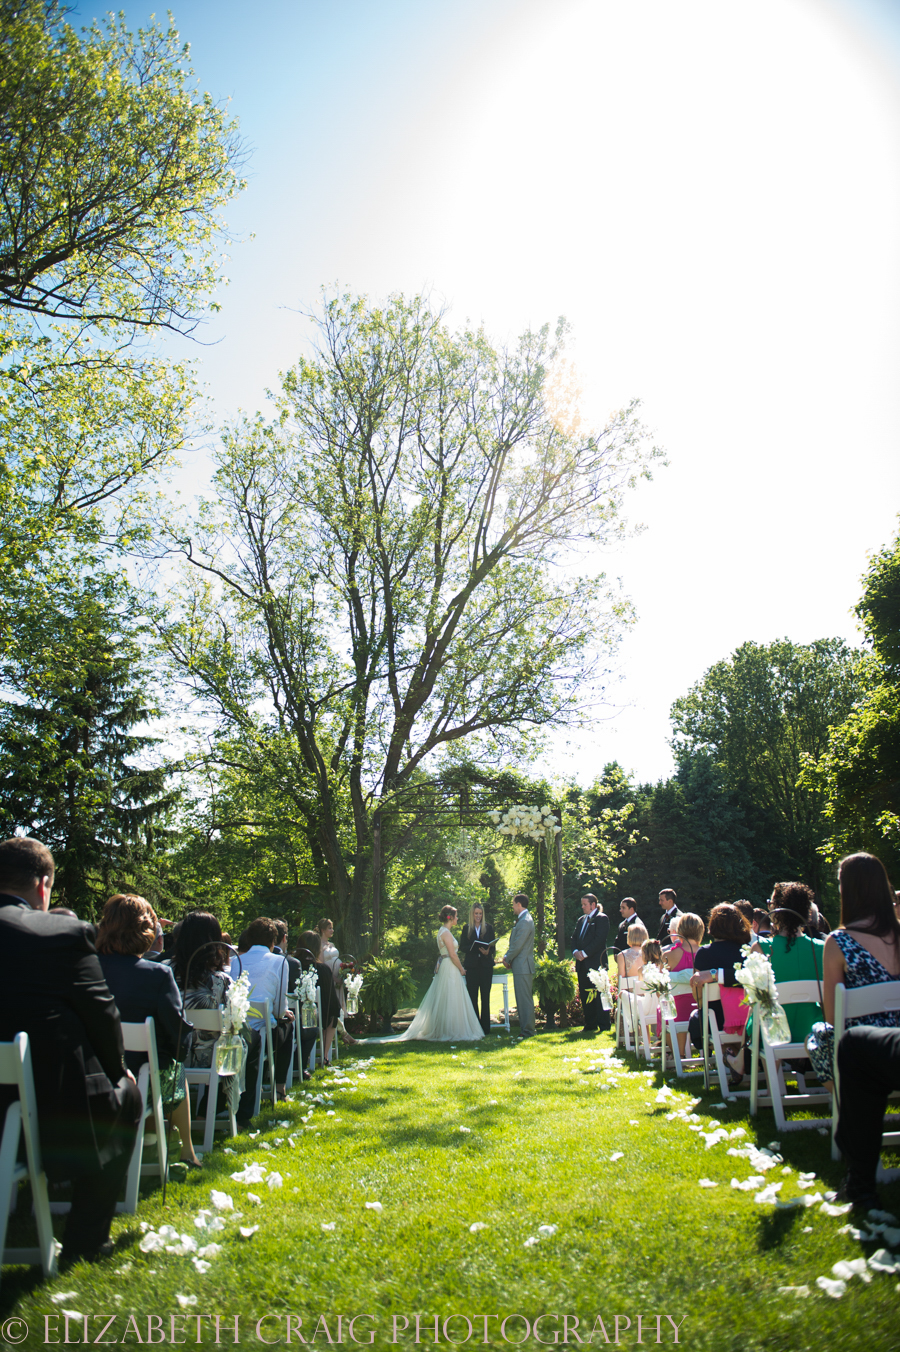 Shady Elms Farm Weddings and Receptions Elizabeth Craig Photography-0107